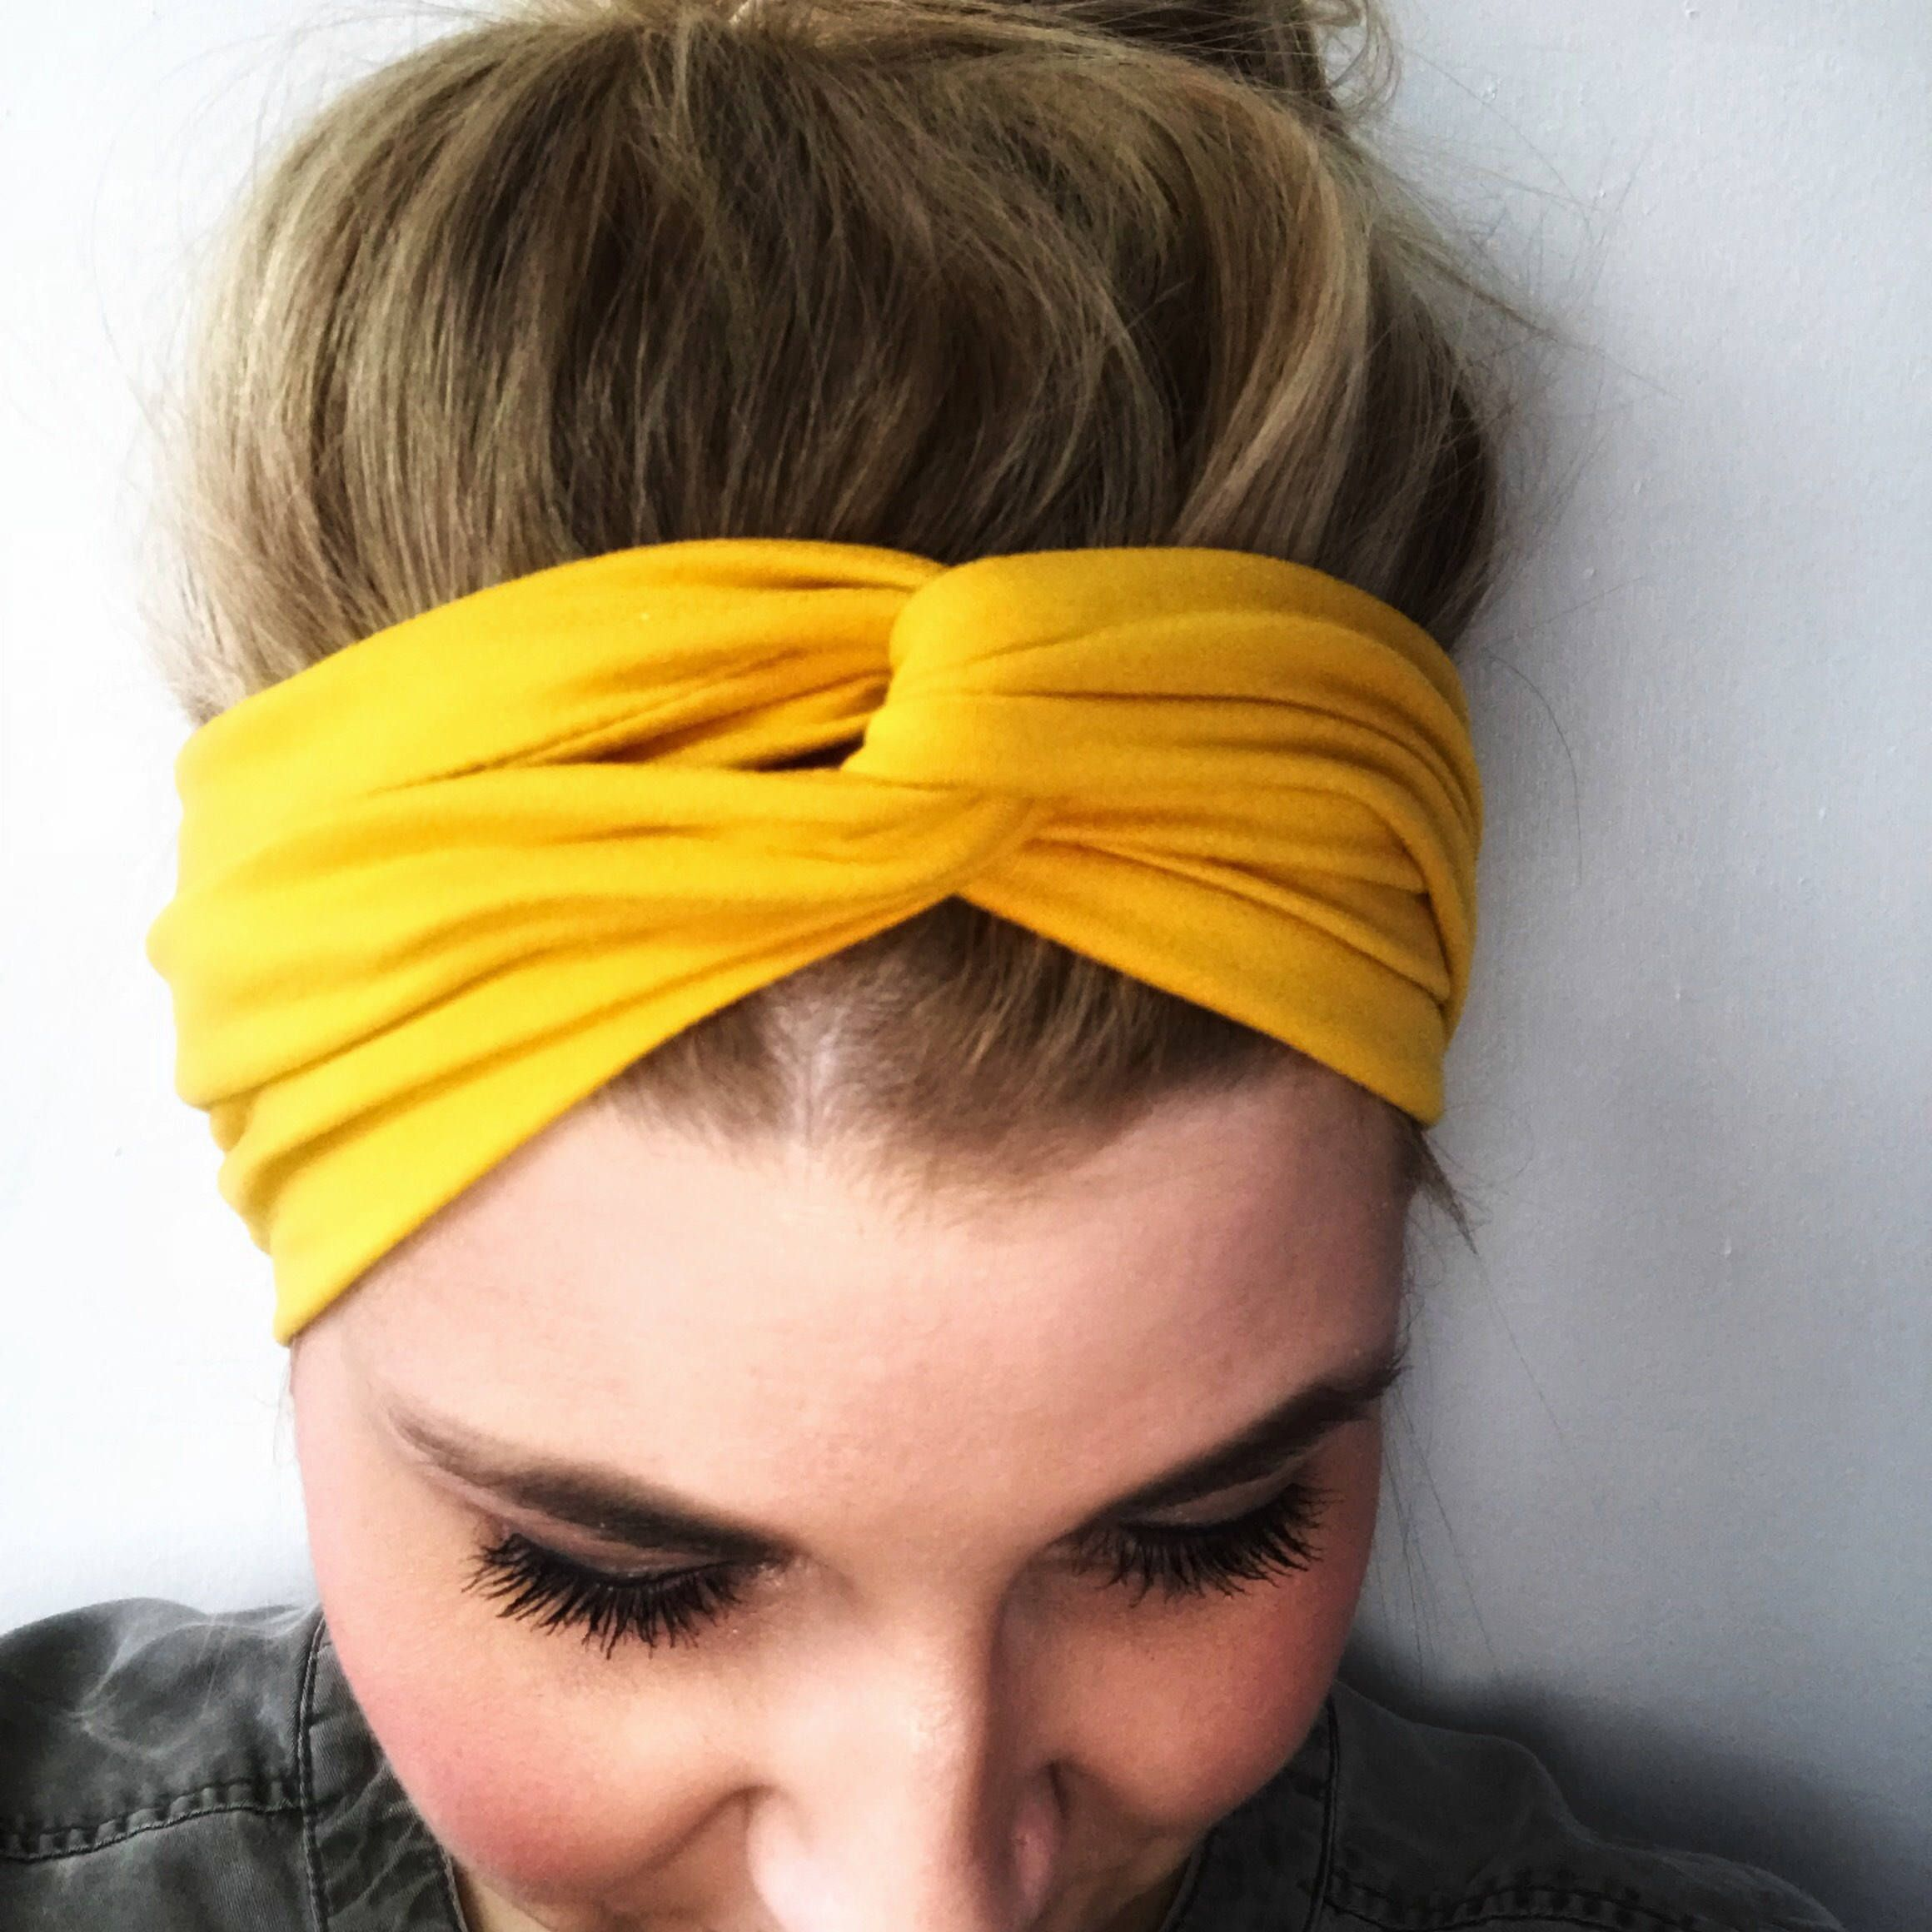 Mustard Headband - Mustard Turban - Boho Headband - Knot Headband Women -  Headbands for women - knot headband adult - mustard yellow turban cee9ab6ada3